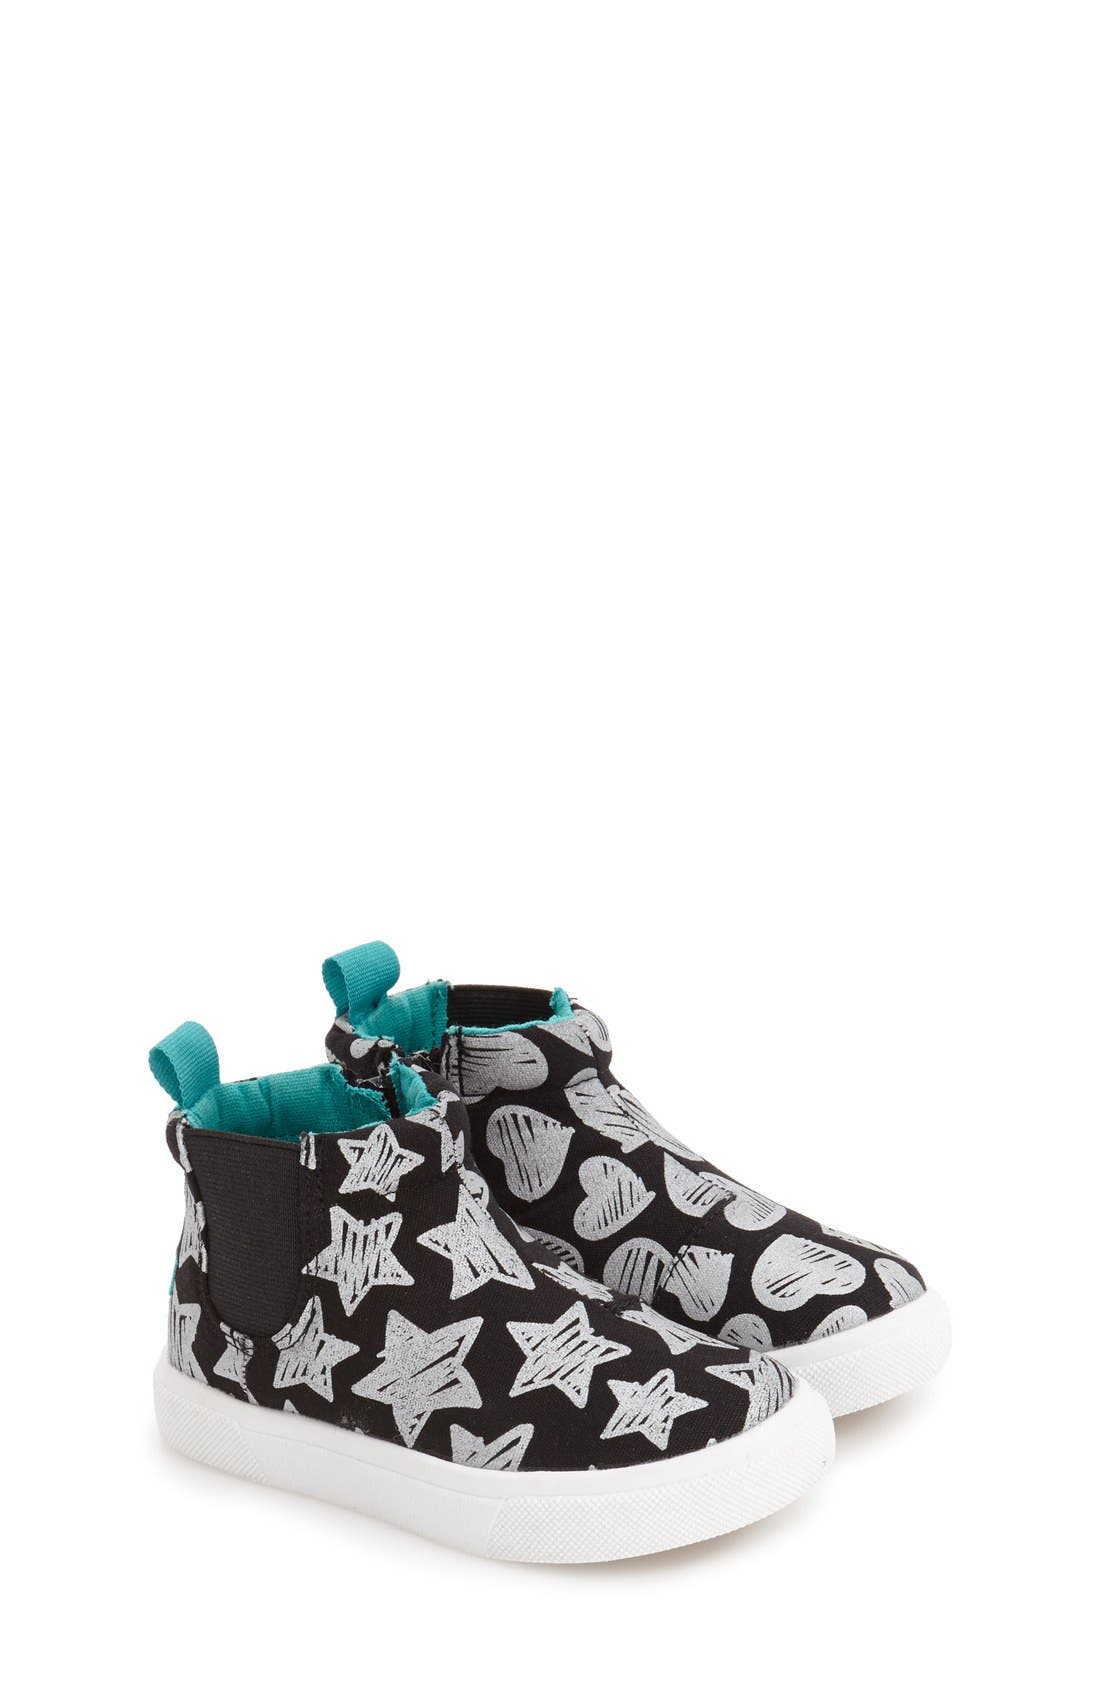 CHOOZE 'Rocket' High Top Sneaker (Toddler, Little Kid & Big Kid)